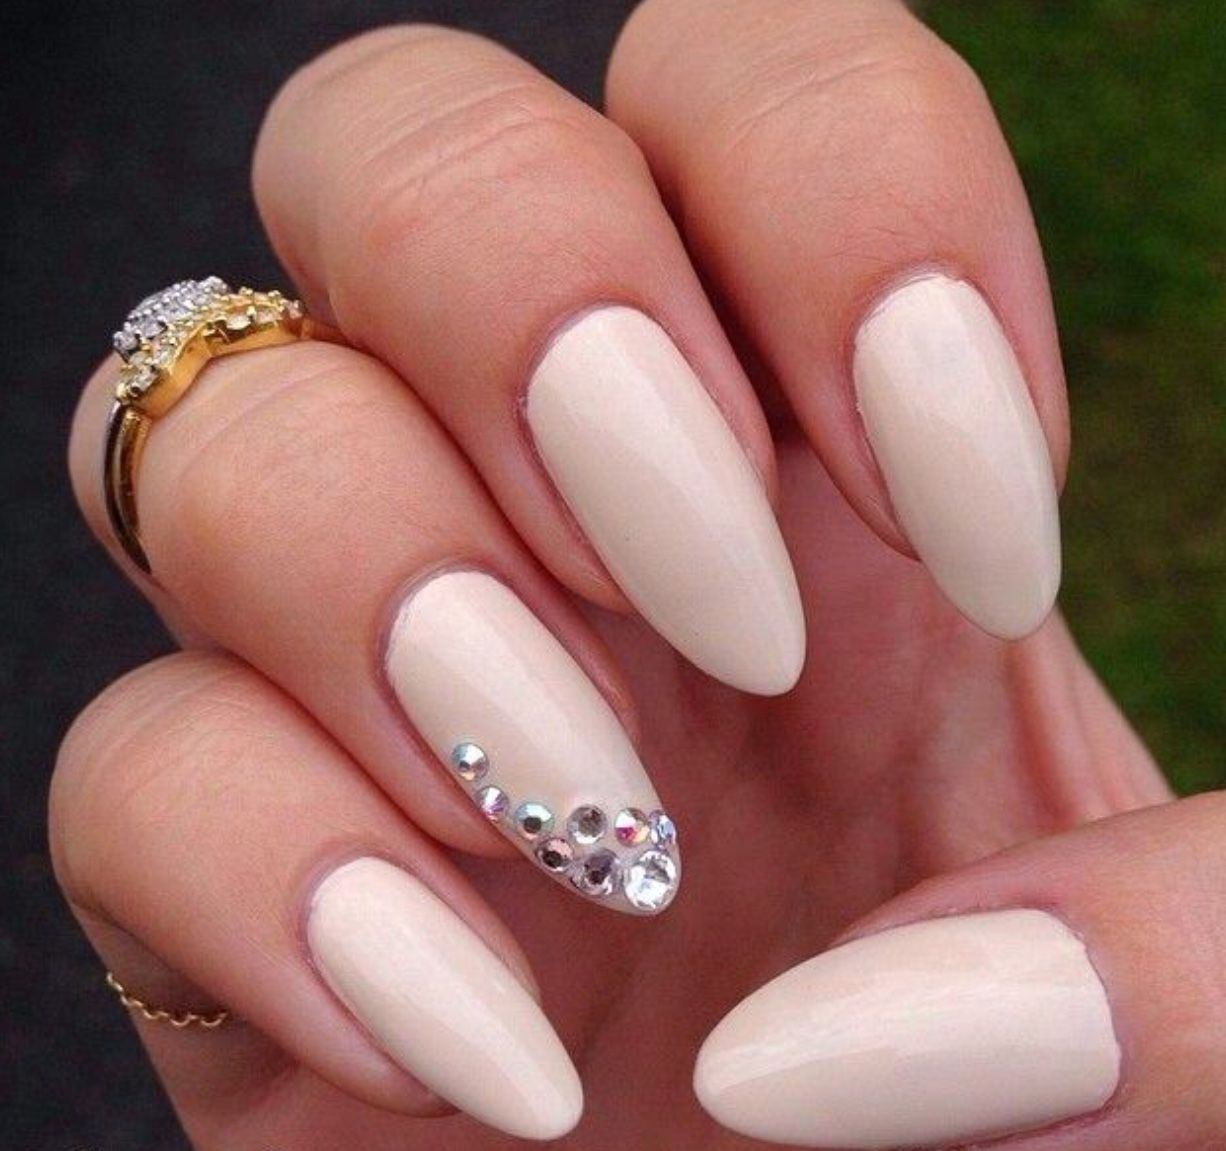 Pin by Renee Sanchez on nails | Pinterest | Crazy nails, Style nails ...